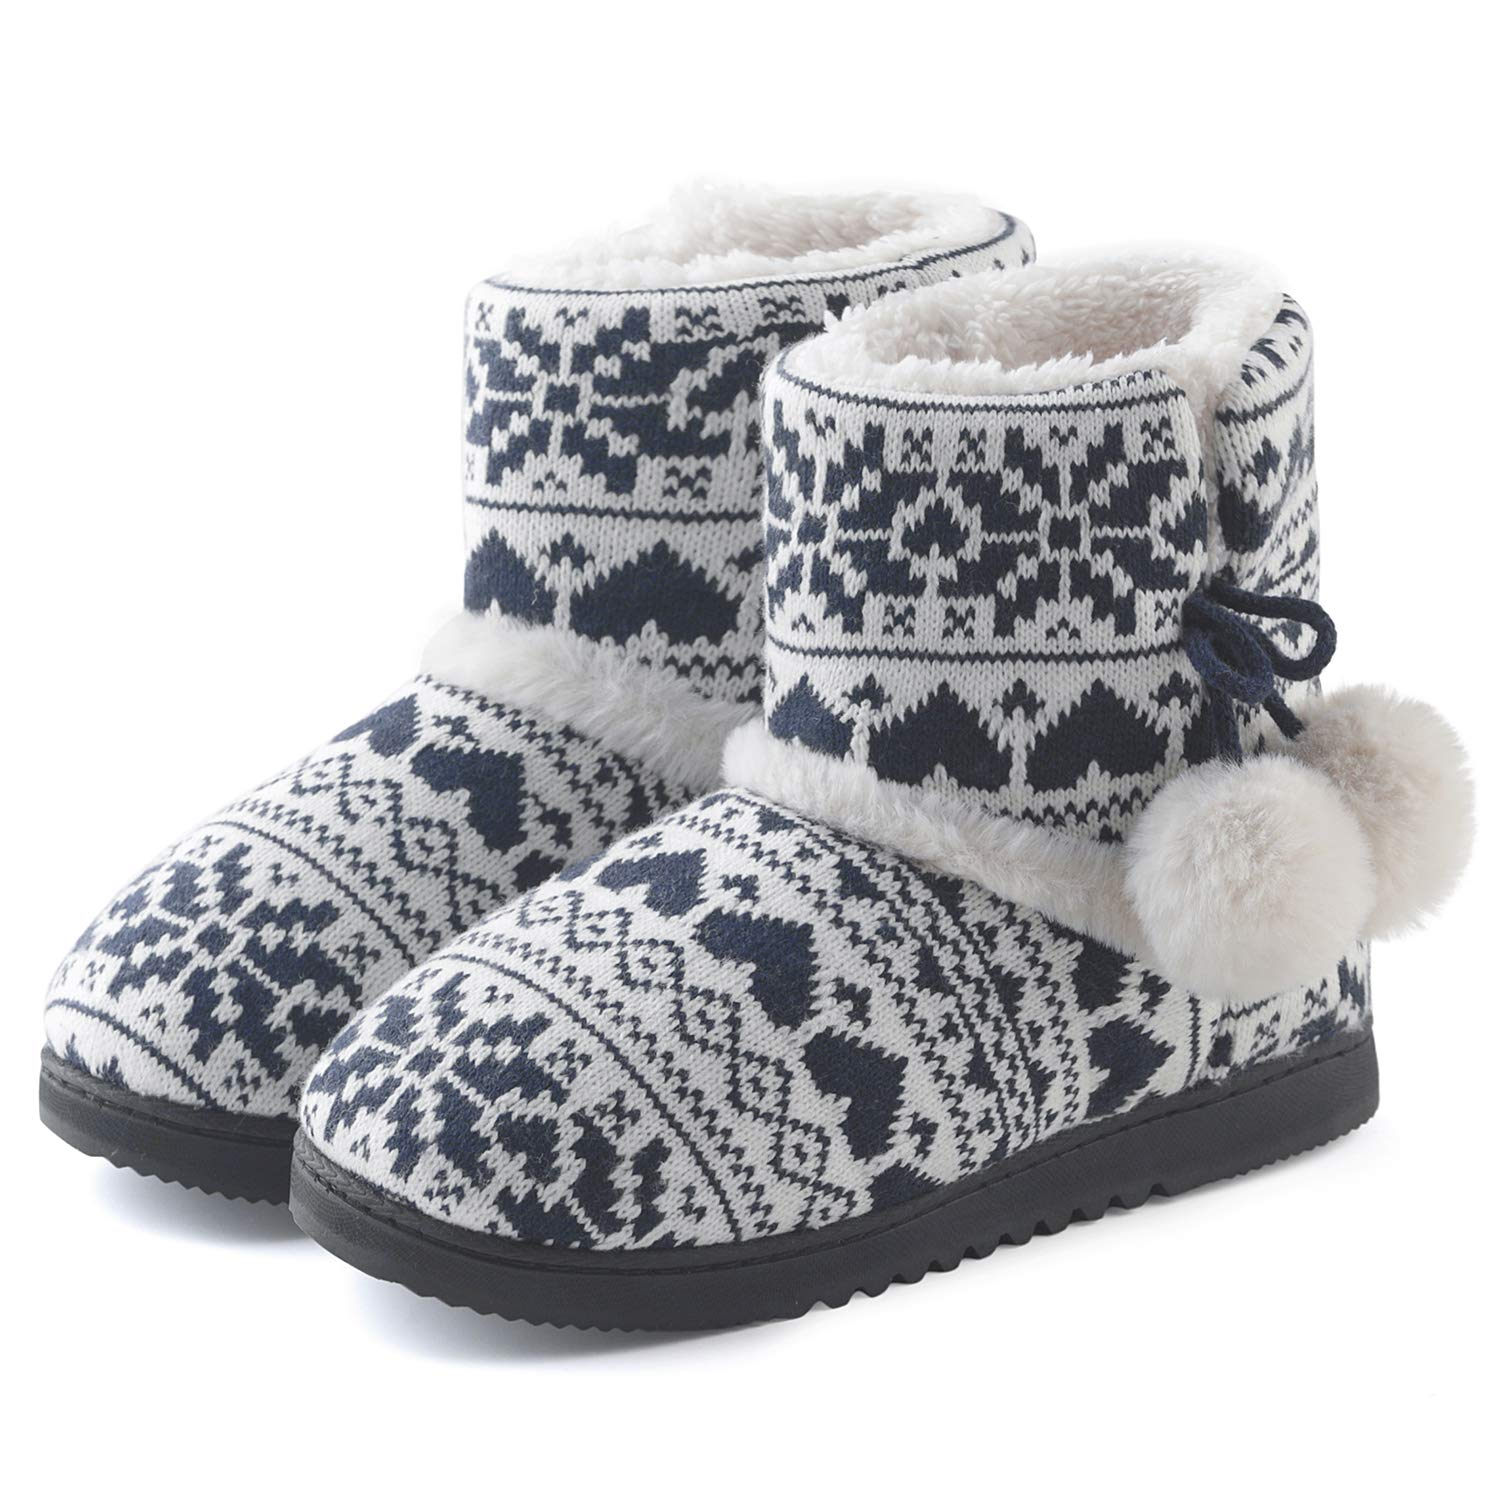 228f66a8d Amazon.com   ChicNChic Women Cozy Plush Fleece Bootie Slippers Winter  Indoor Outdoor House Shoes   Slippers